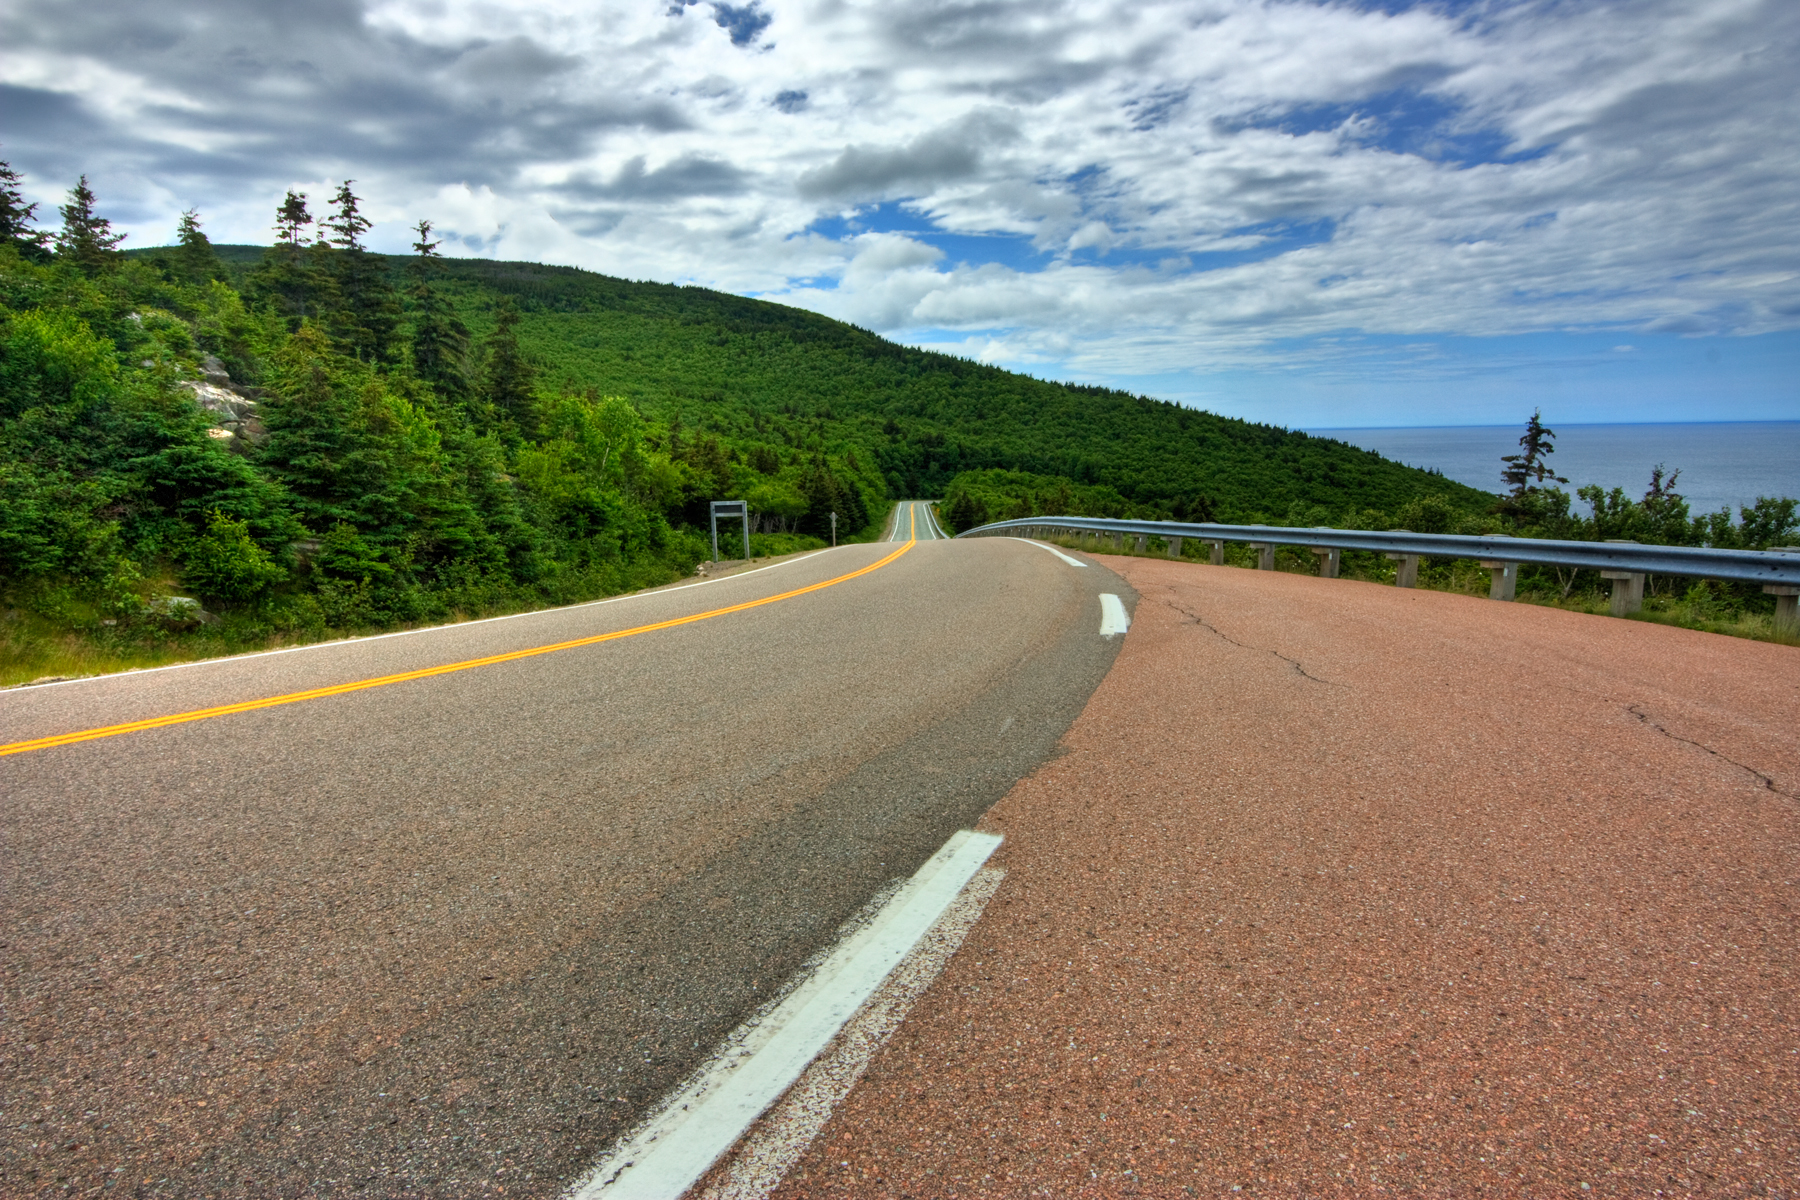 Cabot trail scenic route - hdr photo